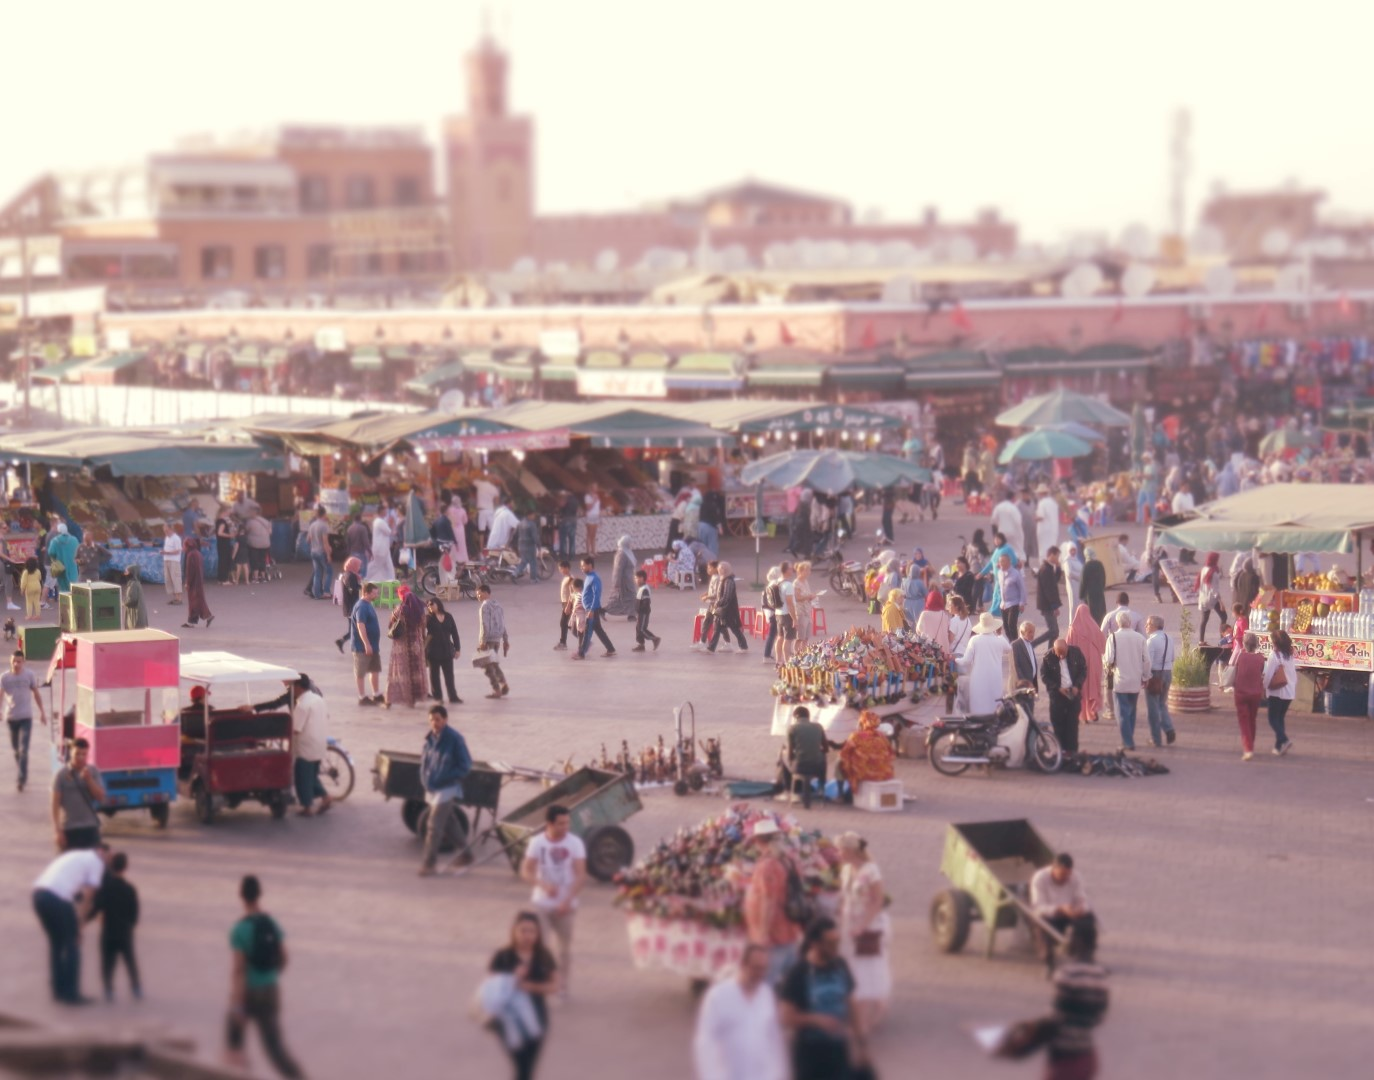 Jemaa el Fna in Marrakesh